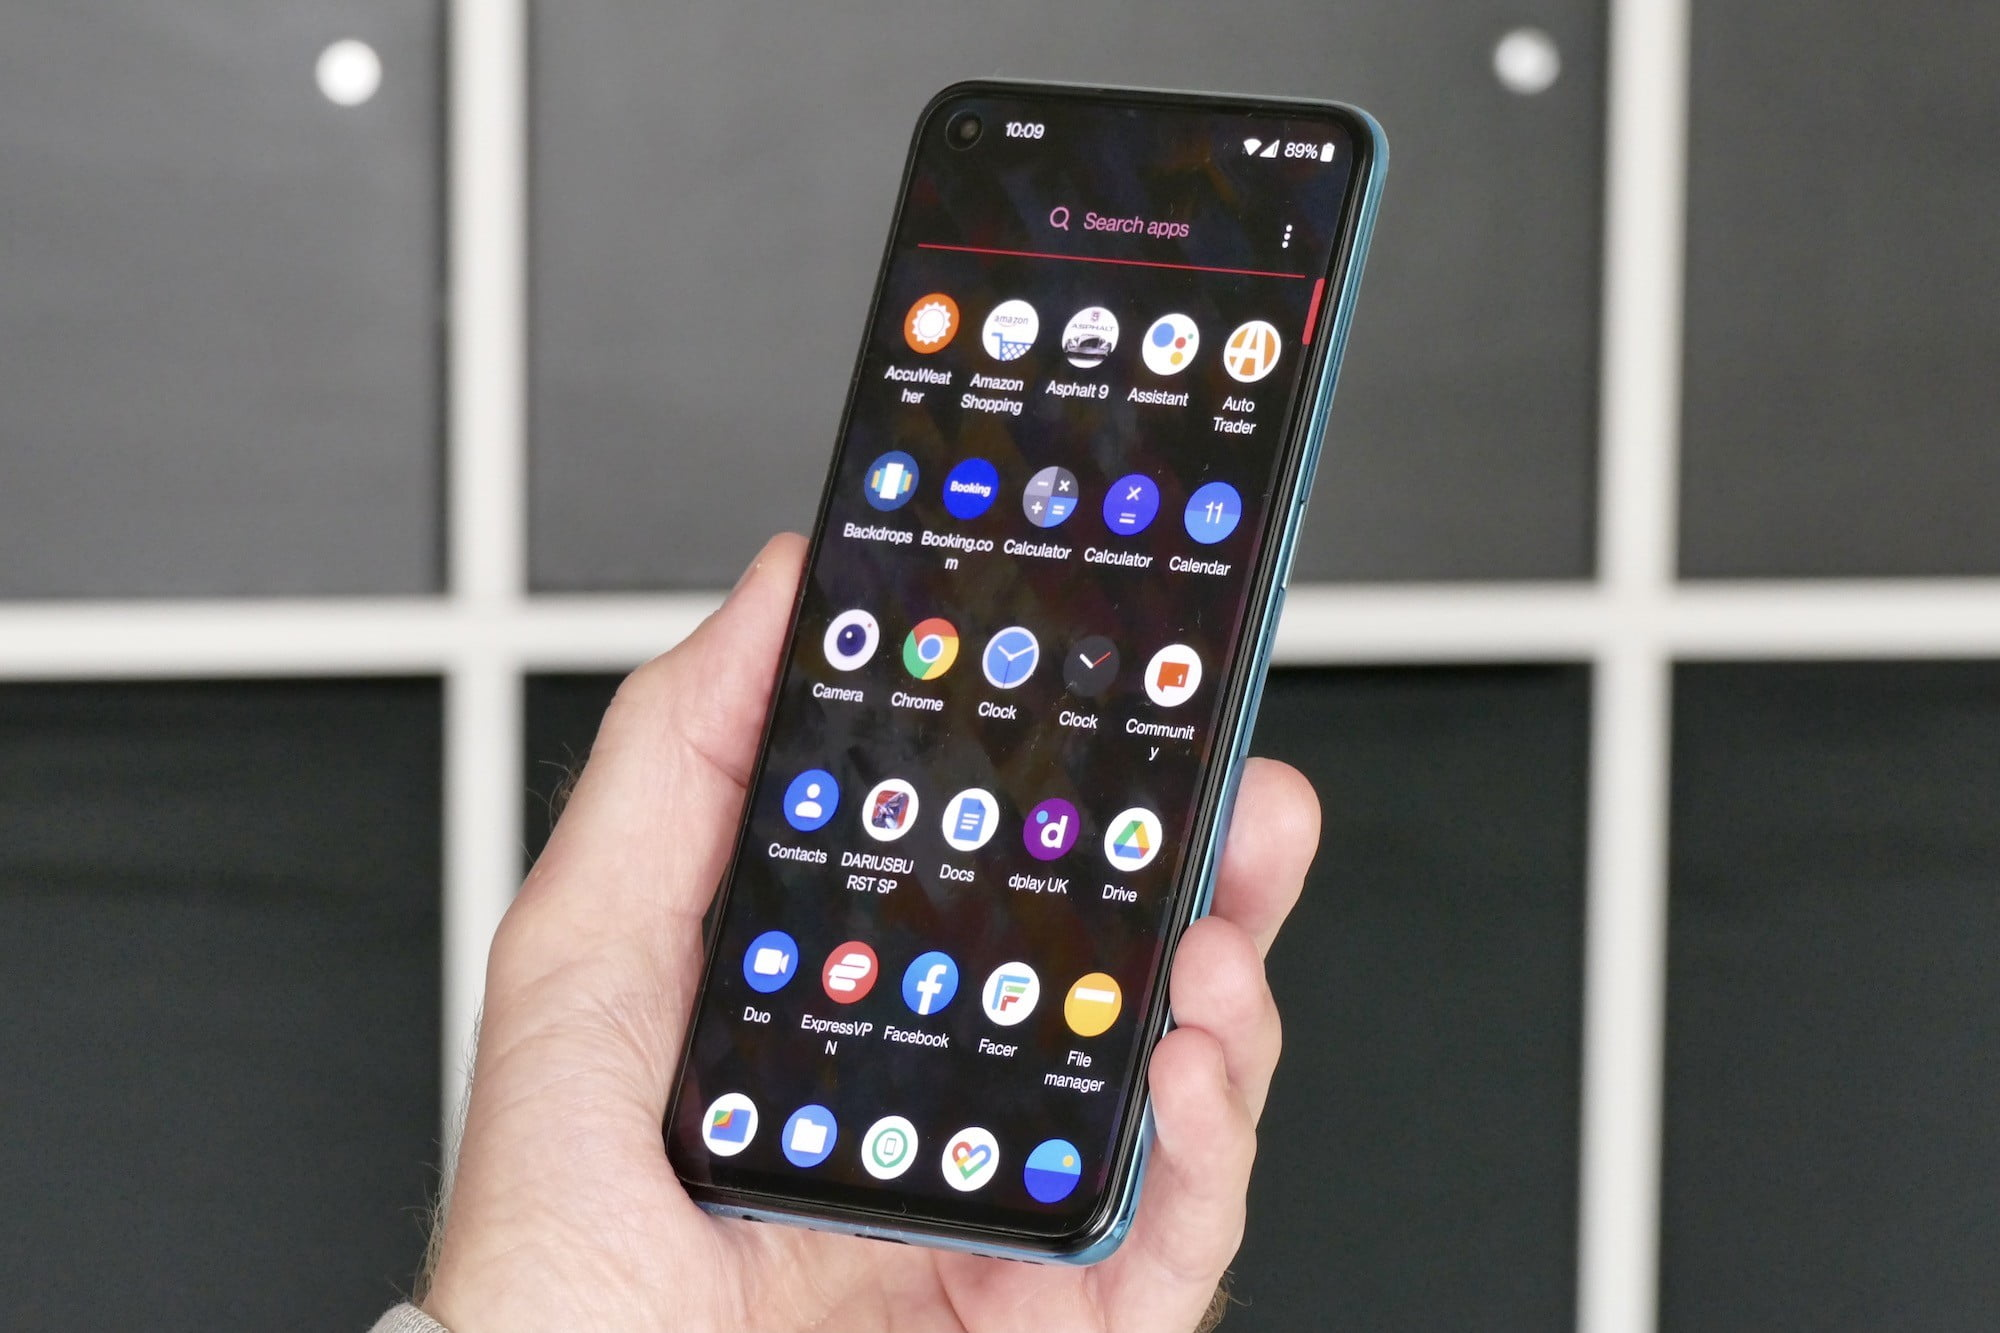 oneplus nord ce 5g review apps